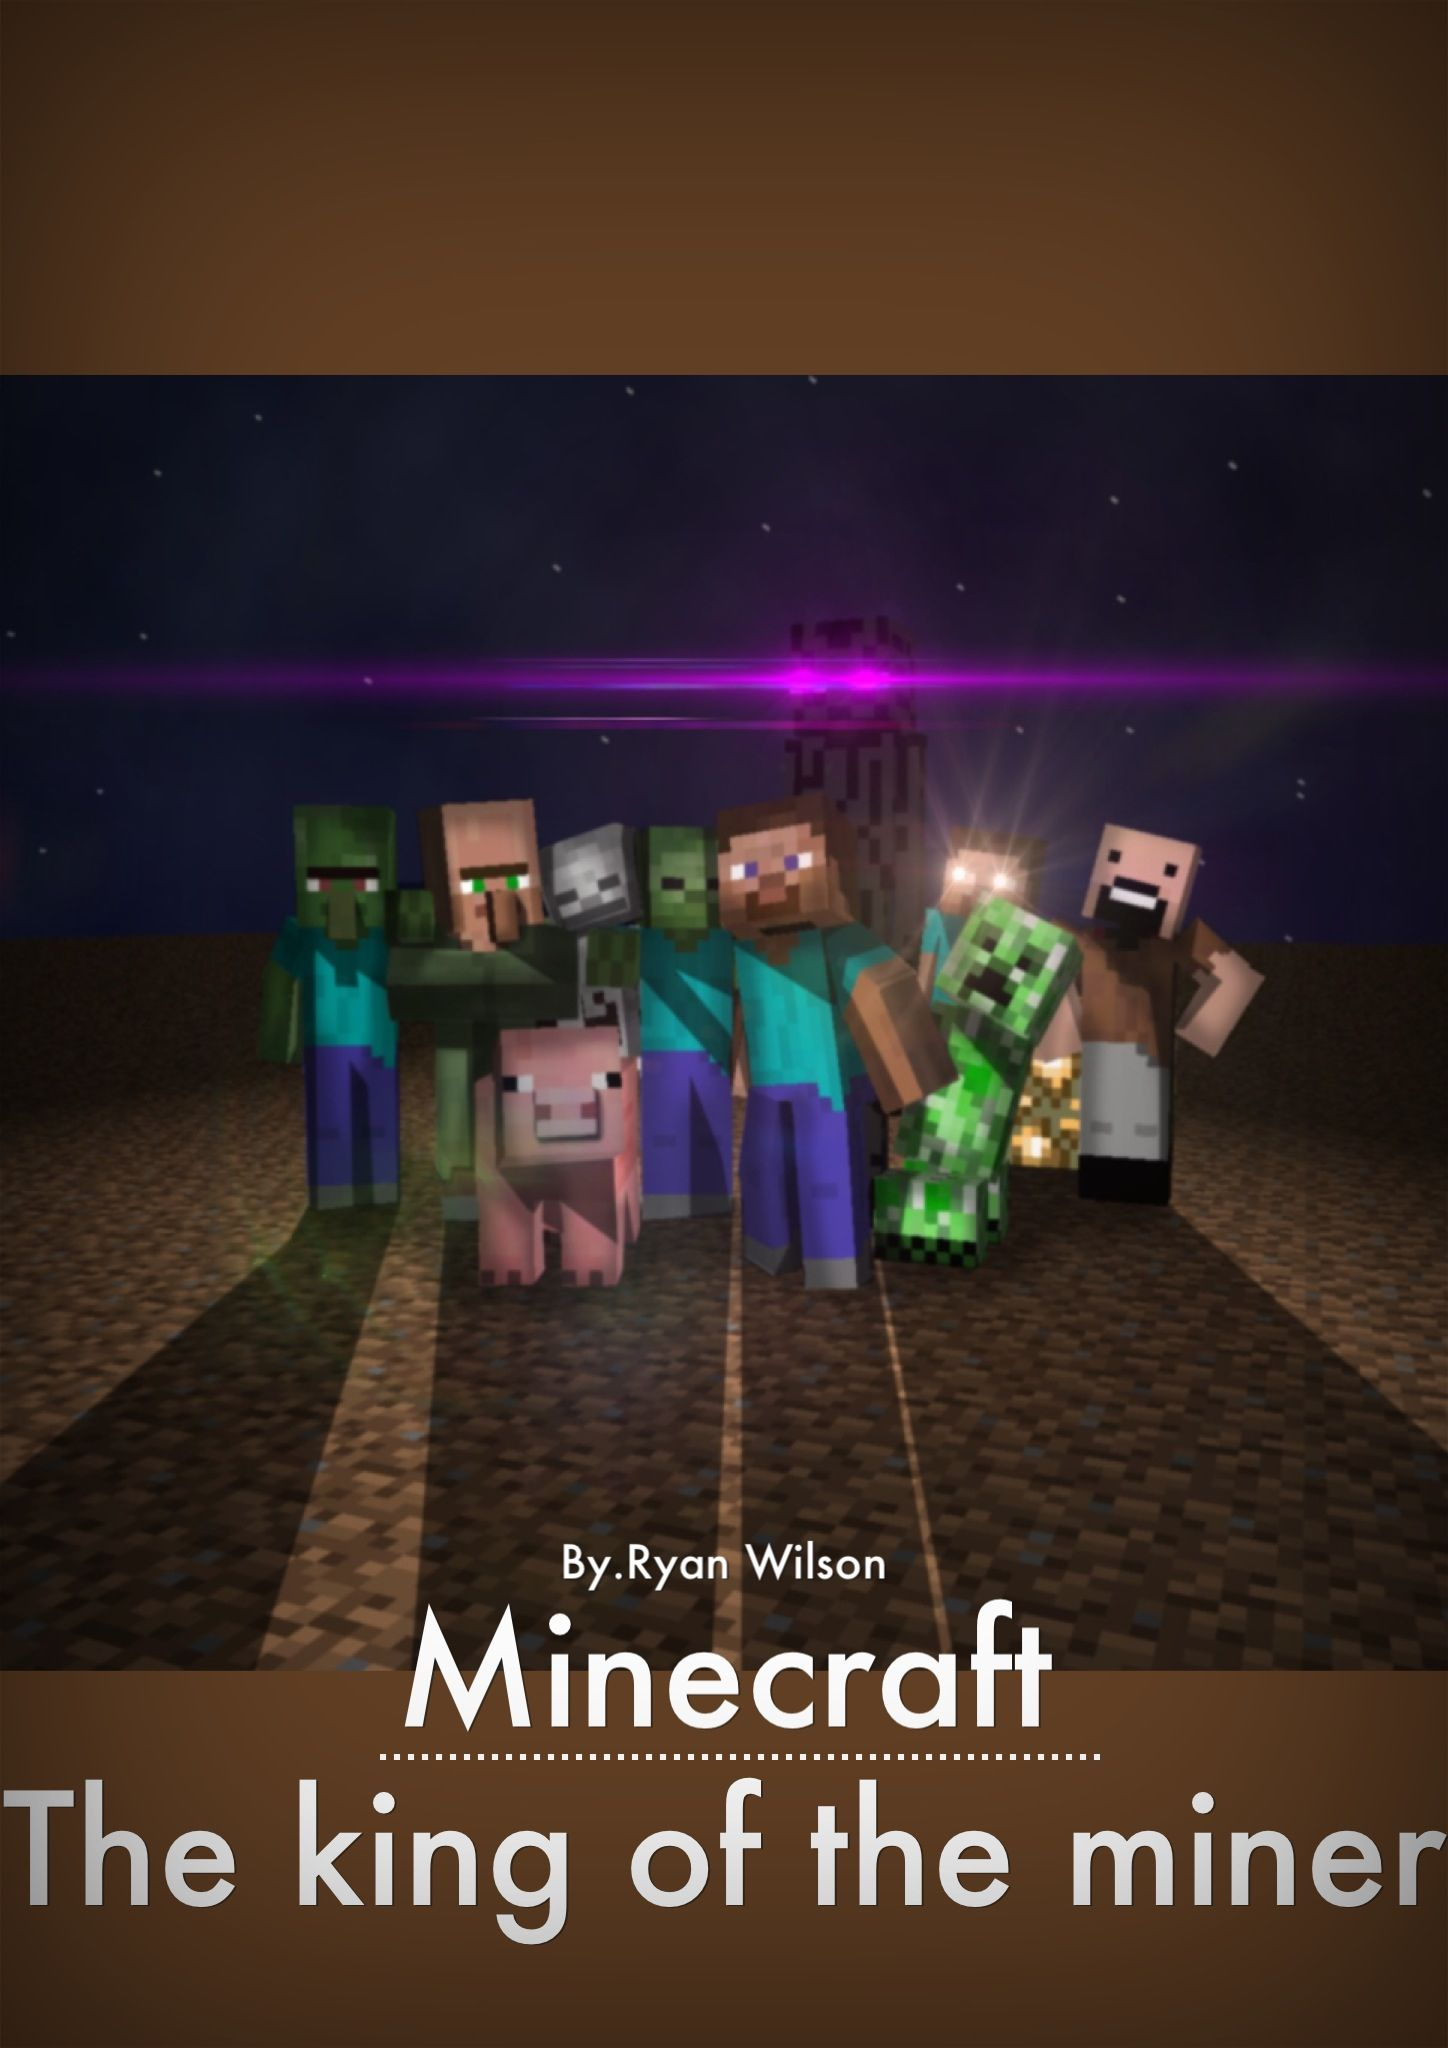 Writing a book called Minecraft the king of the miner